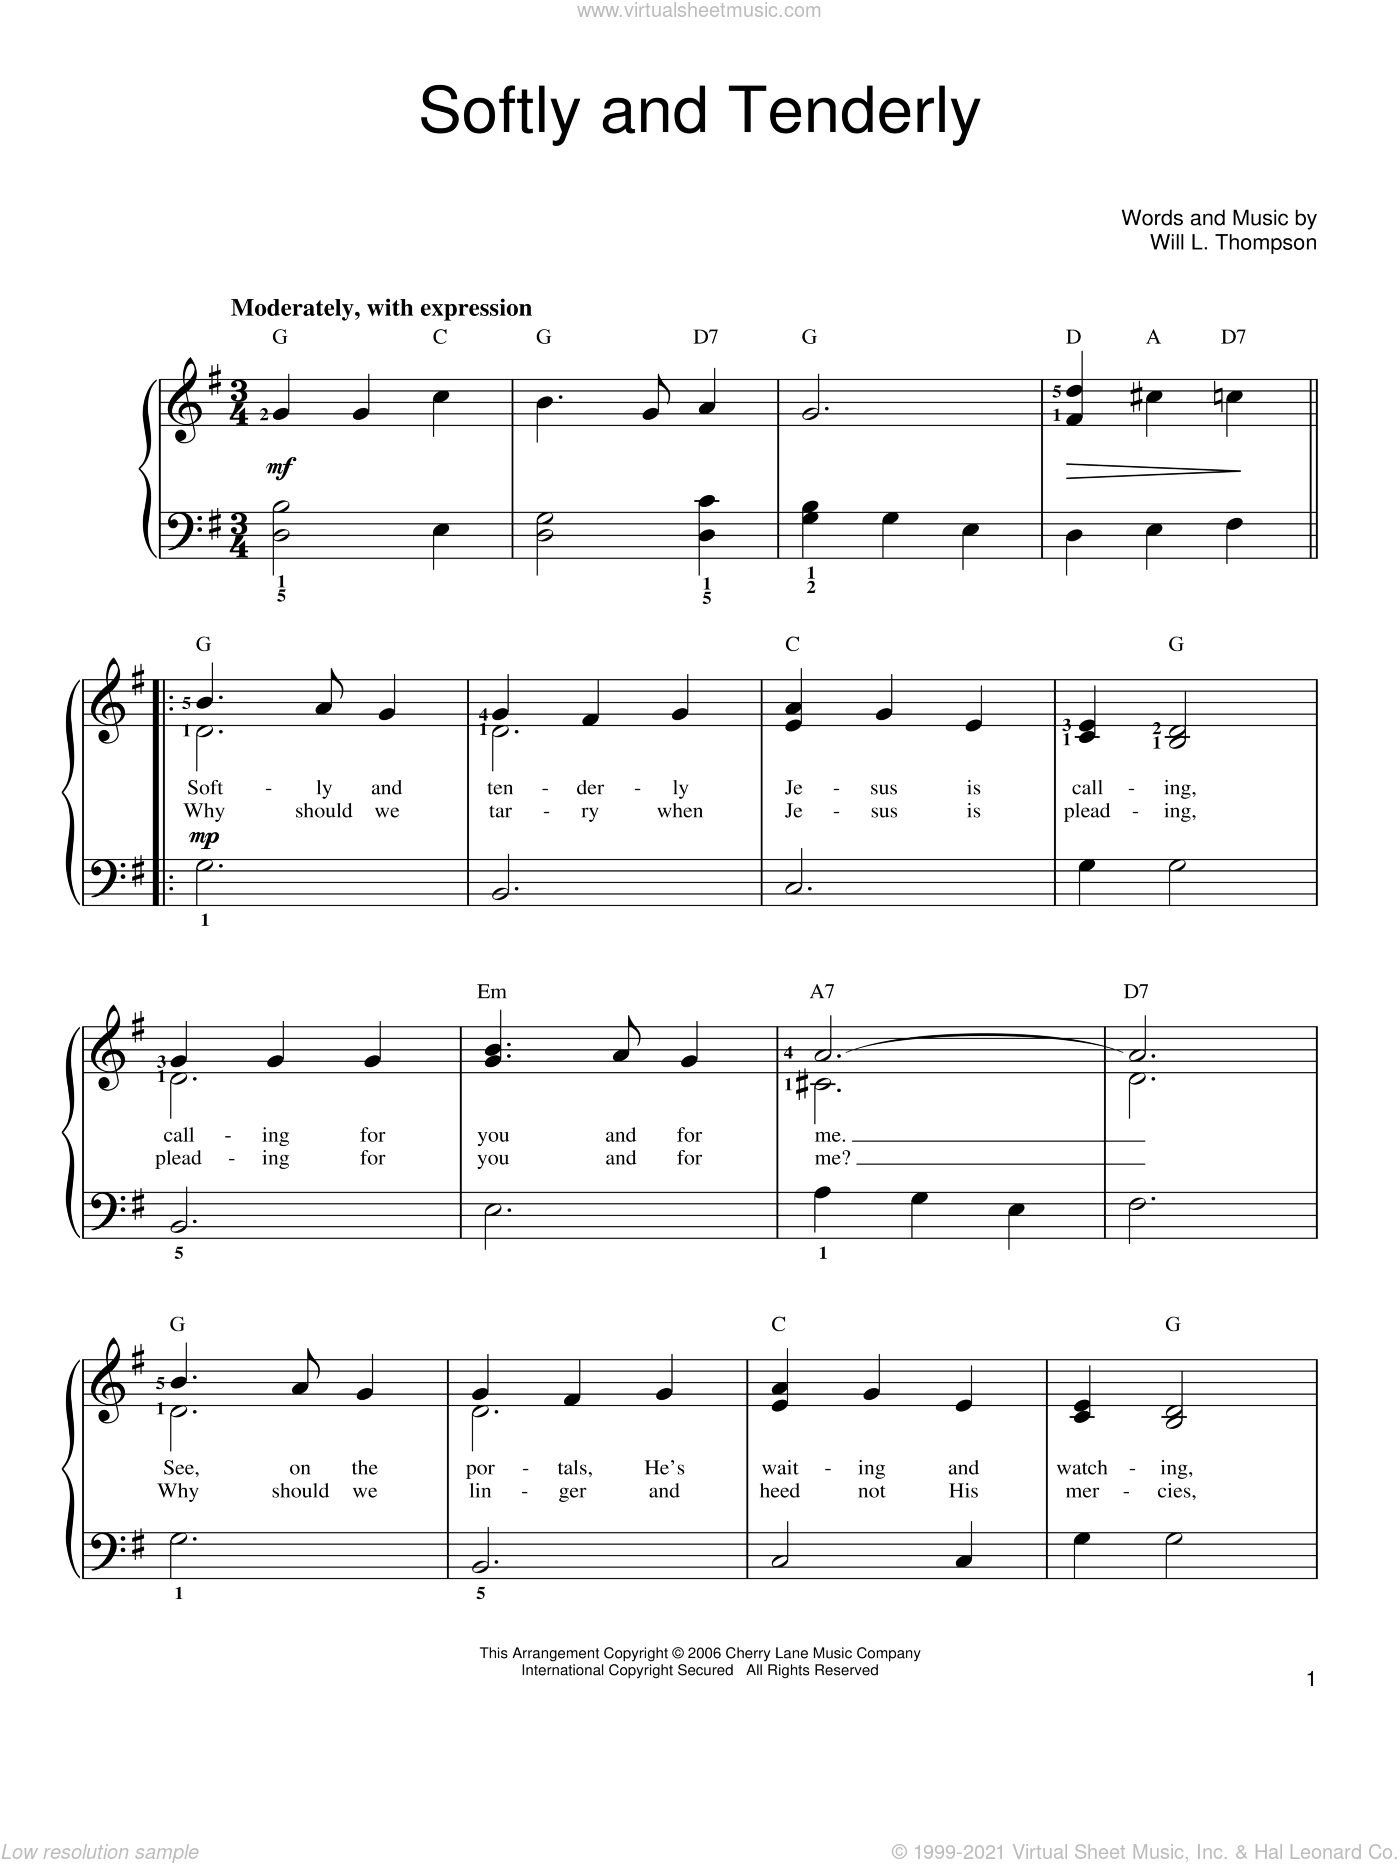 Softly And Tenderly sheet music for piano solo by Will L. Thompson. Score Image Preview.